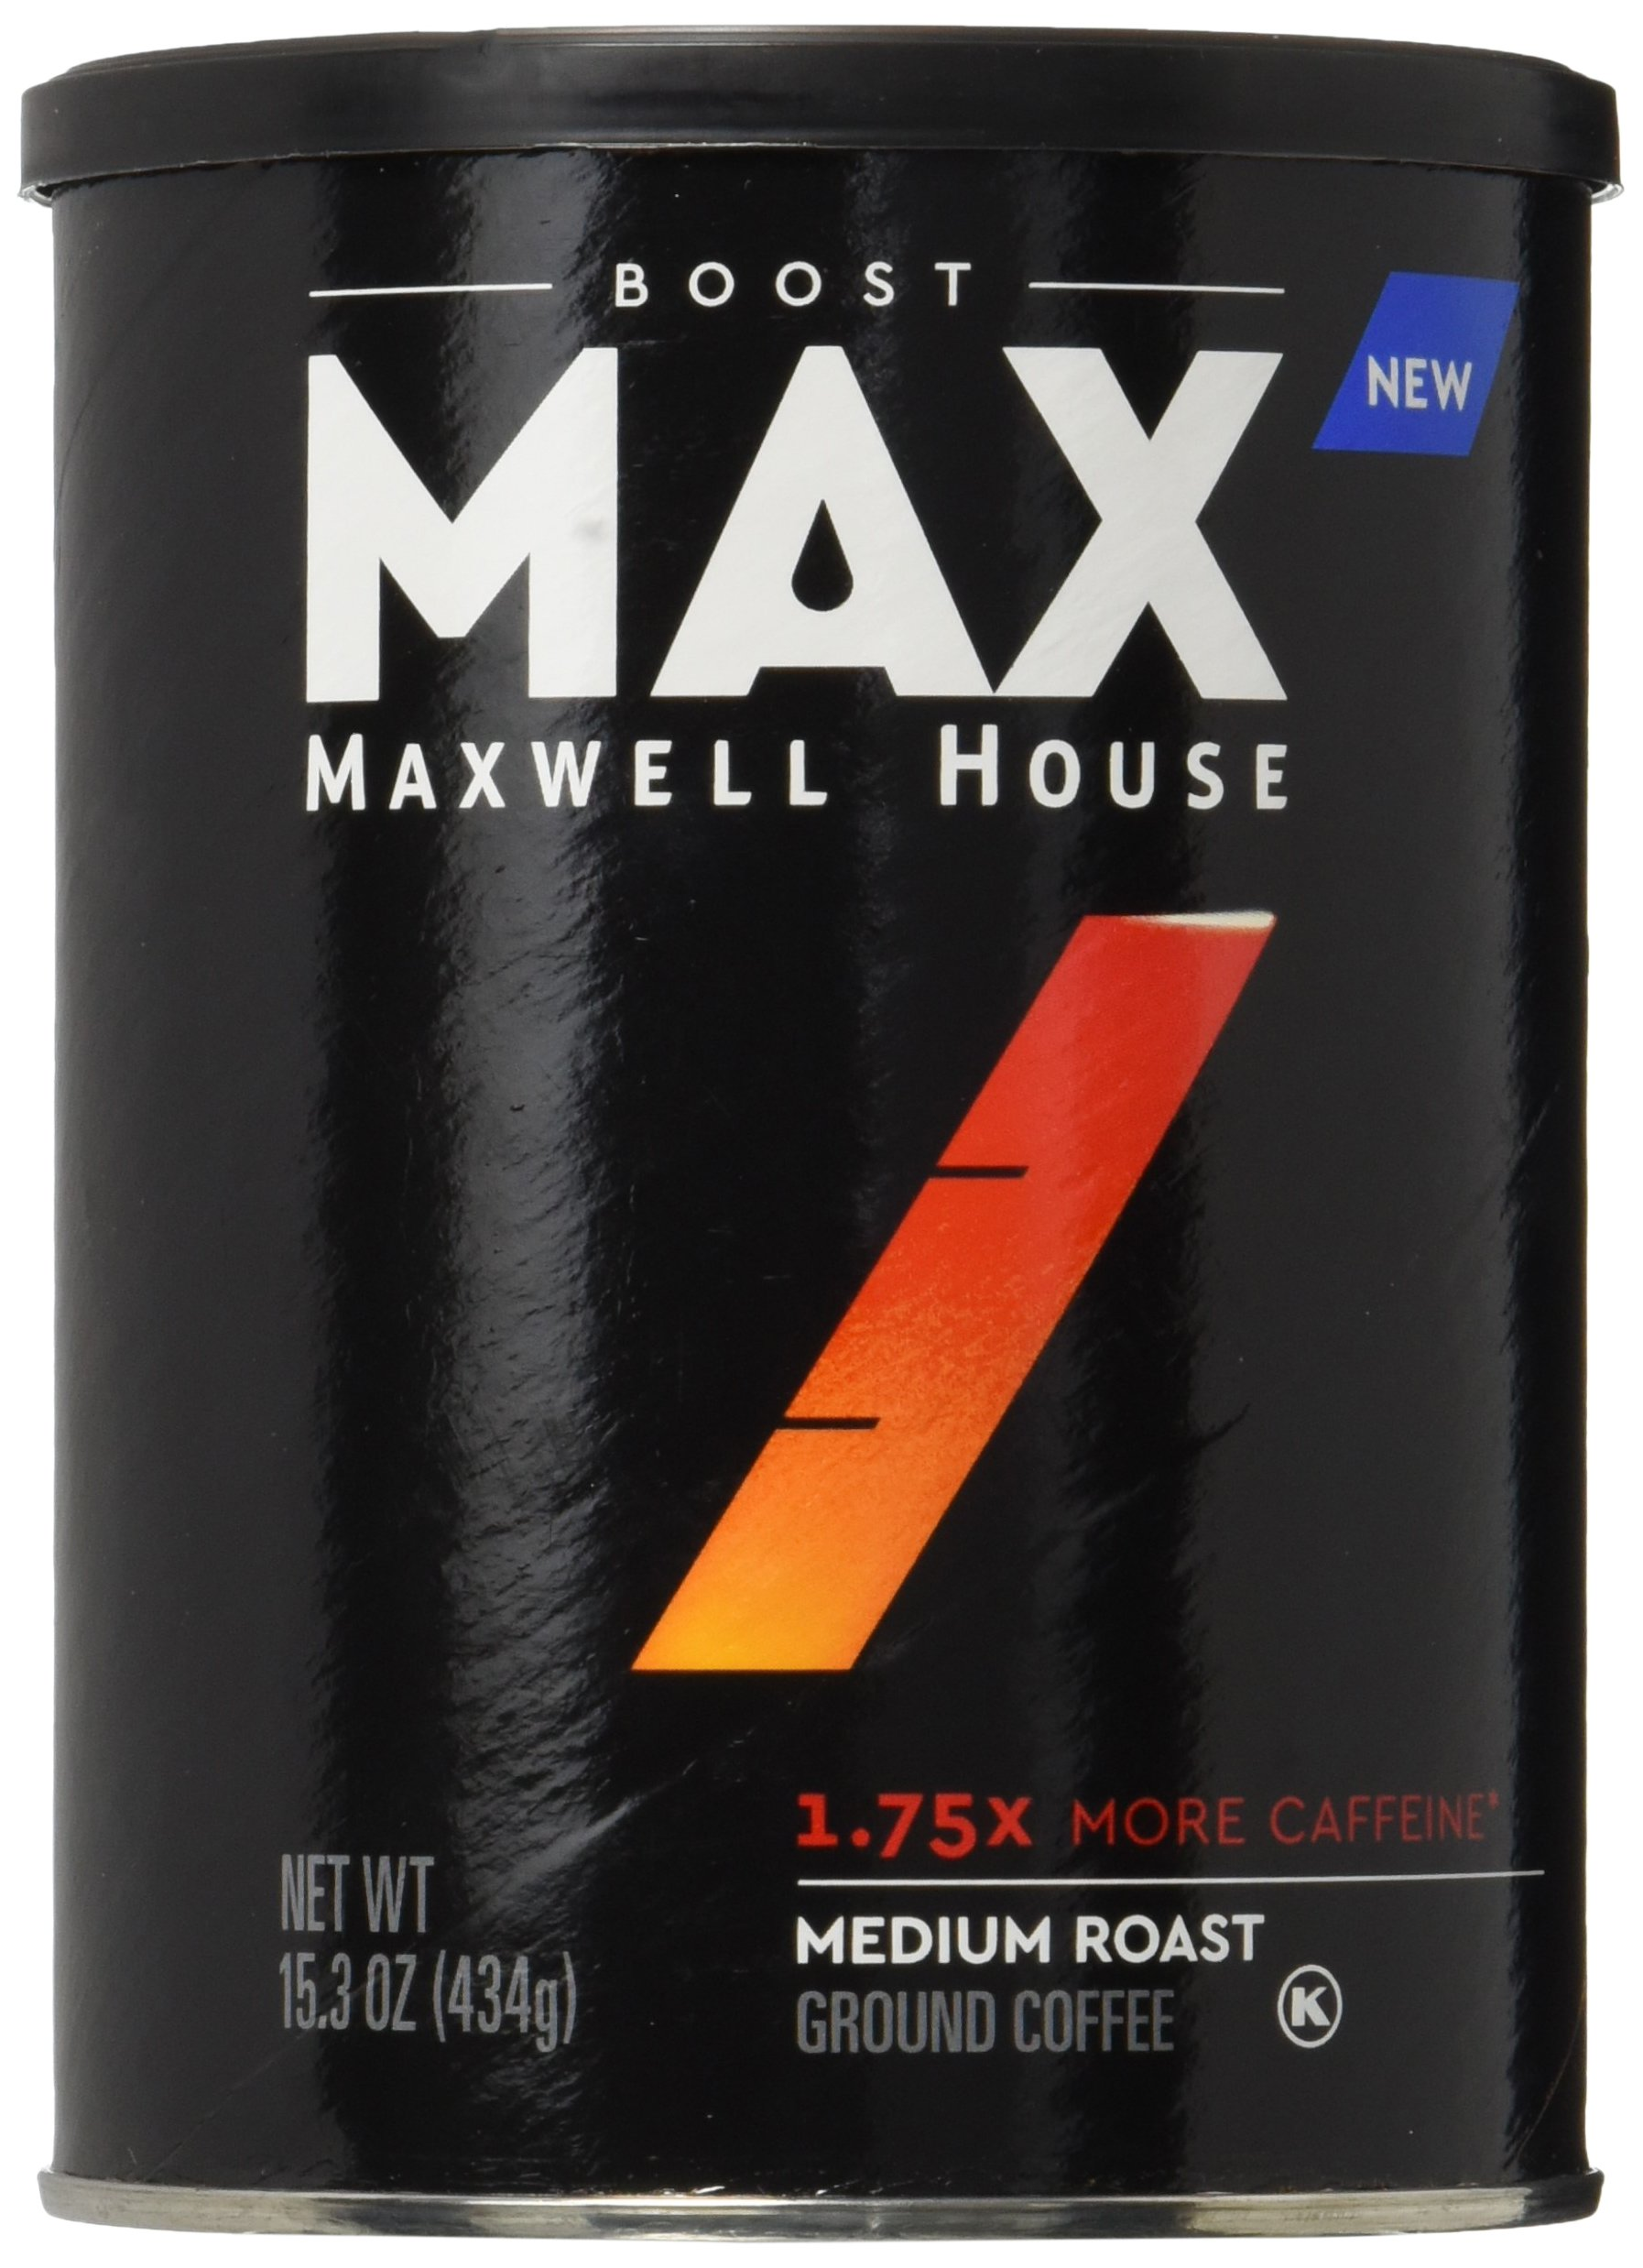 MAX by Maxwell House Boost Roast & Ground Coffee 1.75x Caffeine (13.5 oz Tin, Pack of 6)